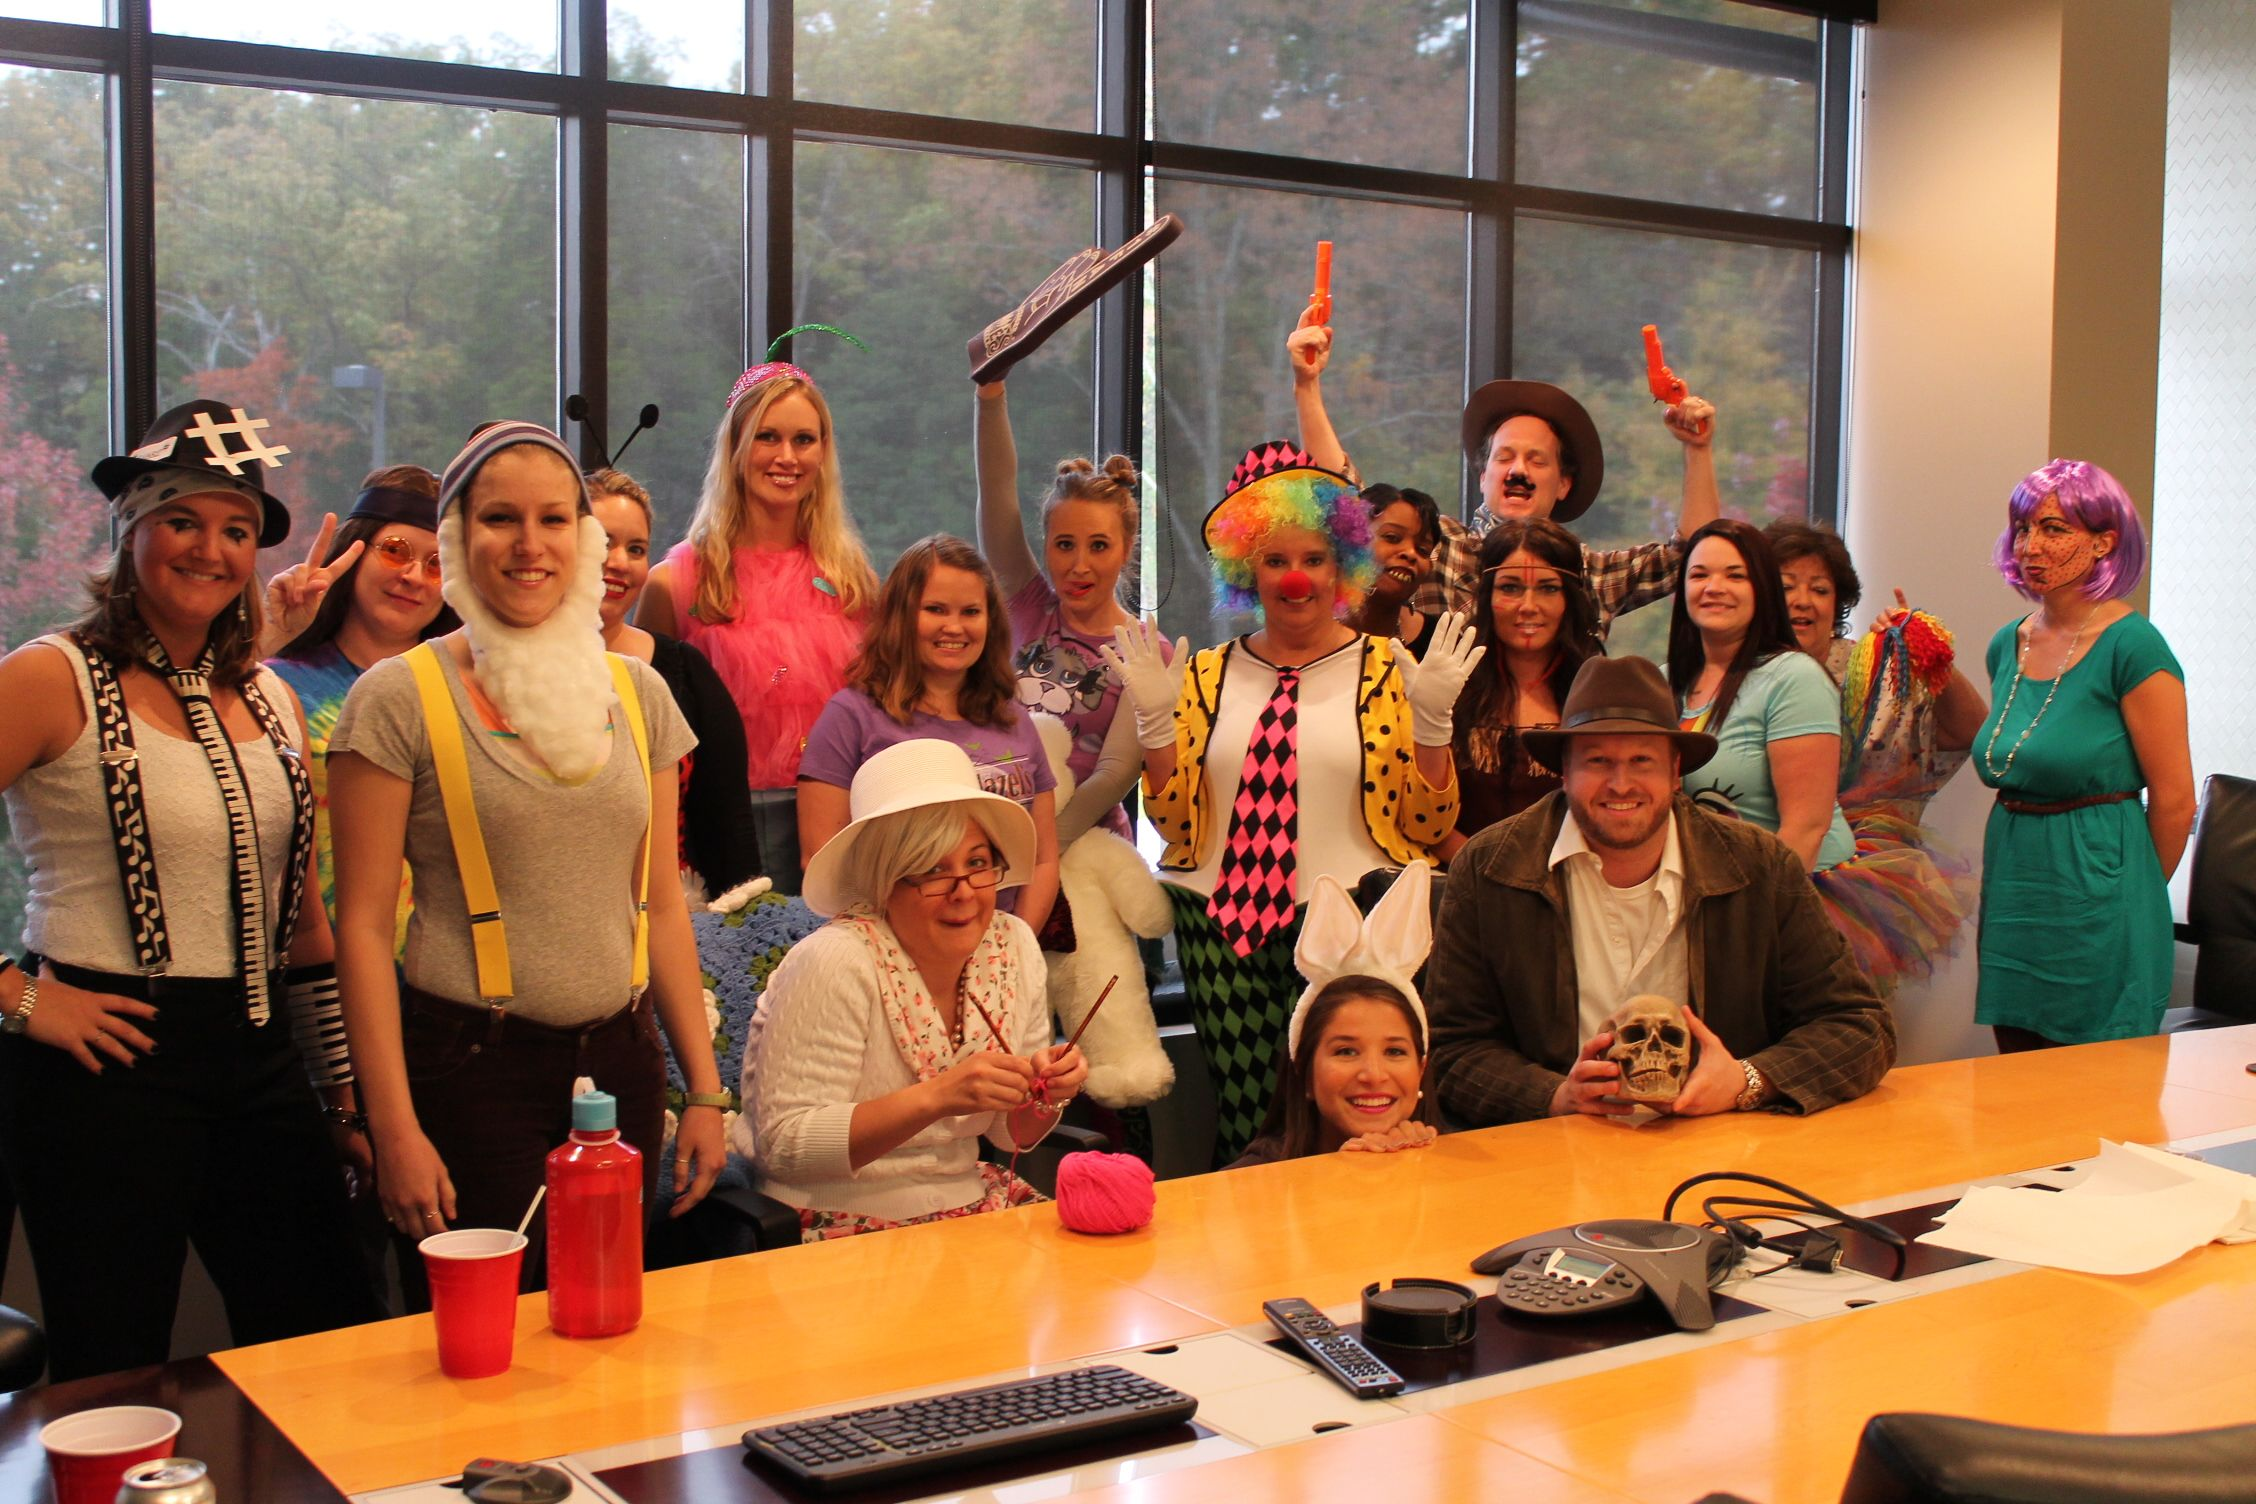 Happy Halloween from Functional Pathways' Corporate Office